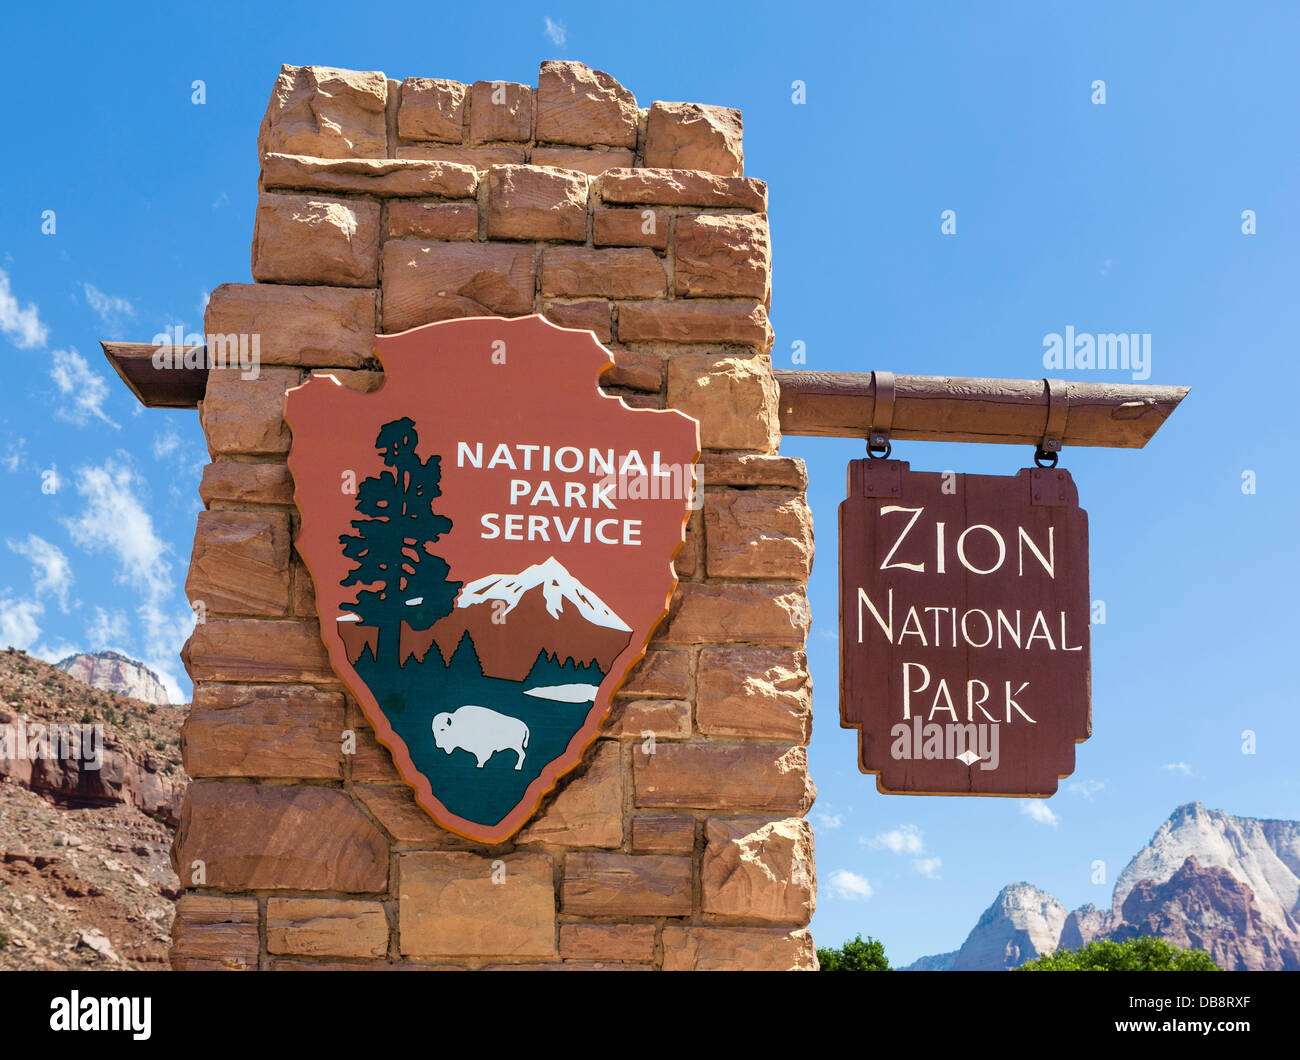 Entrance sign to Zion National Park, Utah, USA - Stock Image